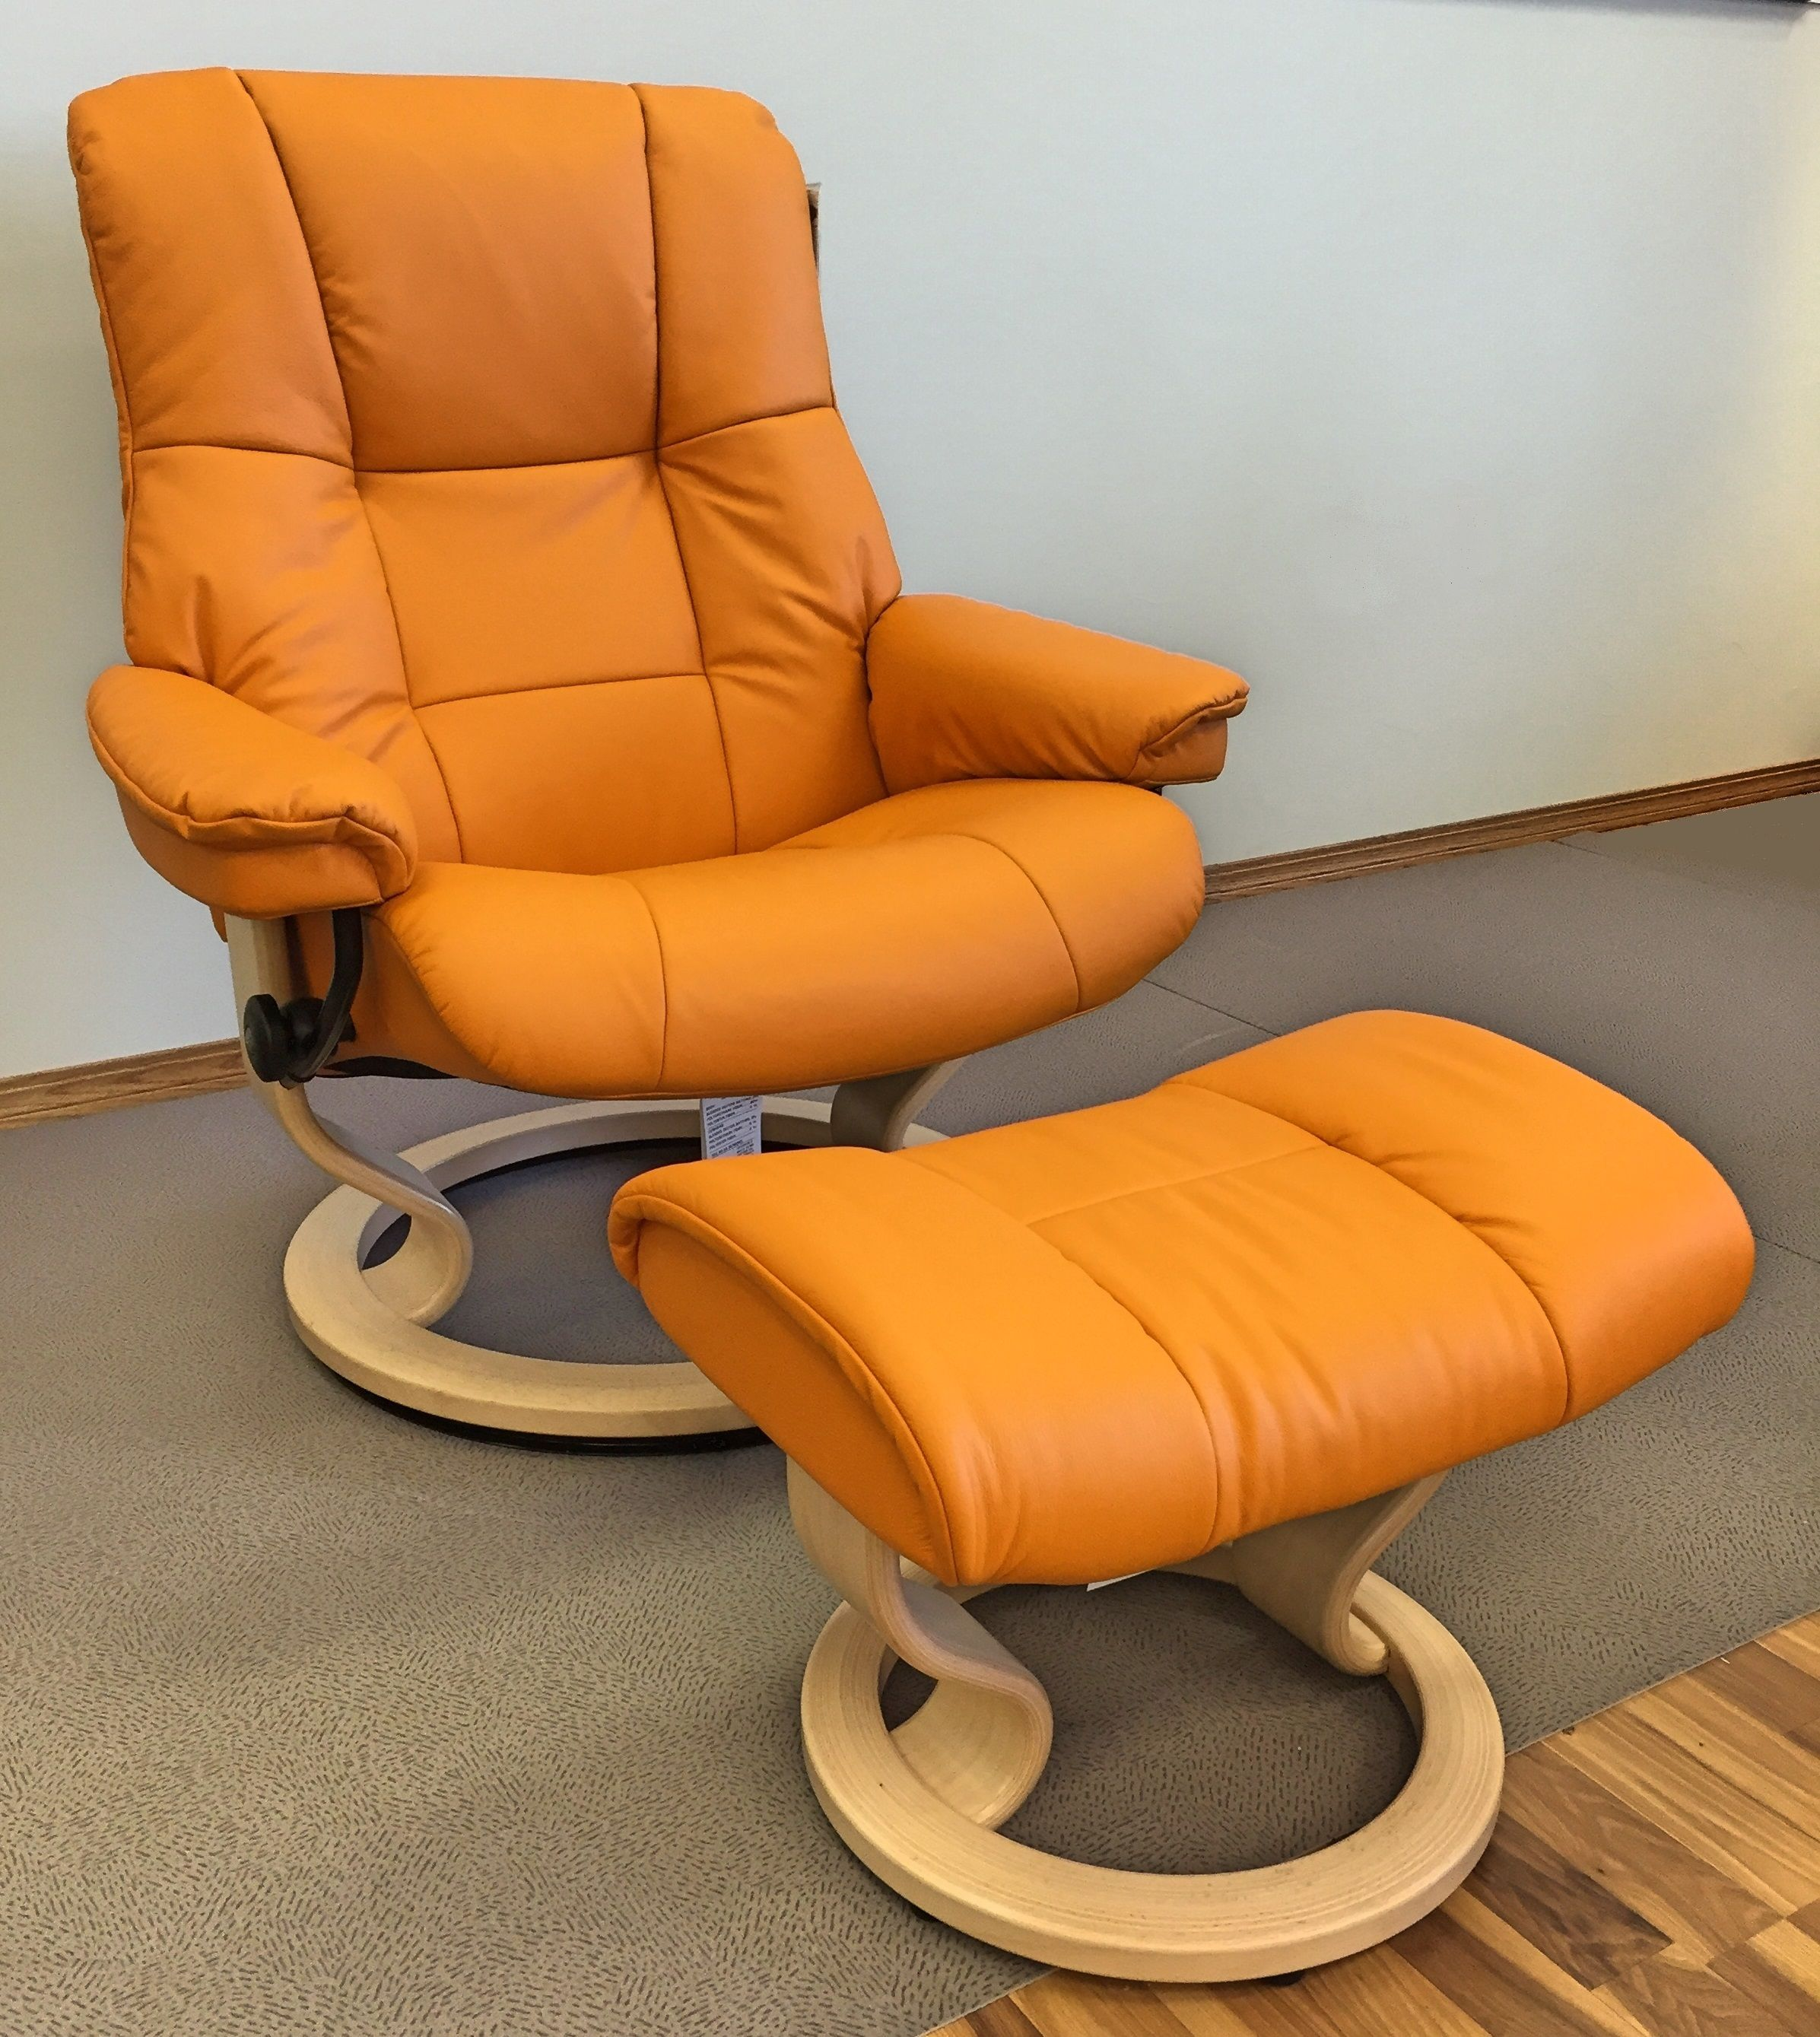 Ekornes Consul Large Ekornes Stressless Mayfair Large In Paloma Clementine With